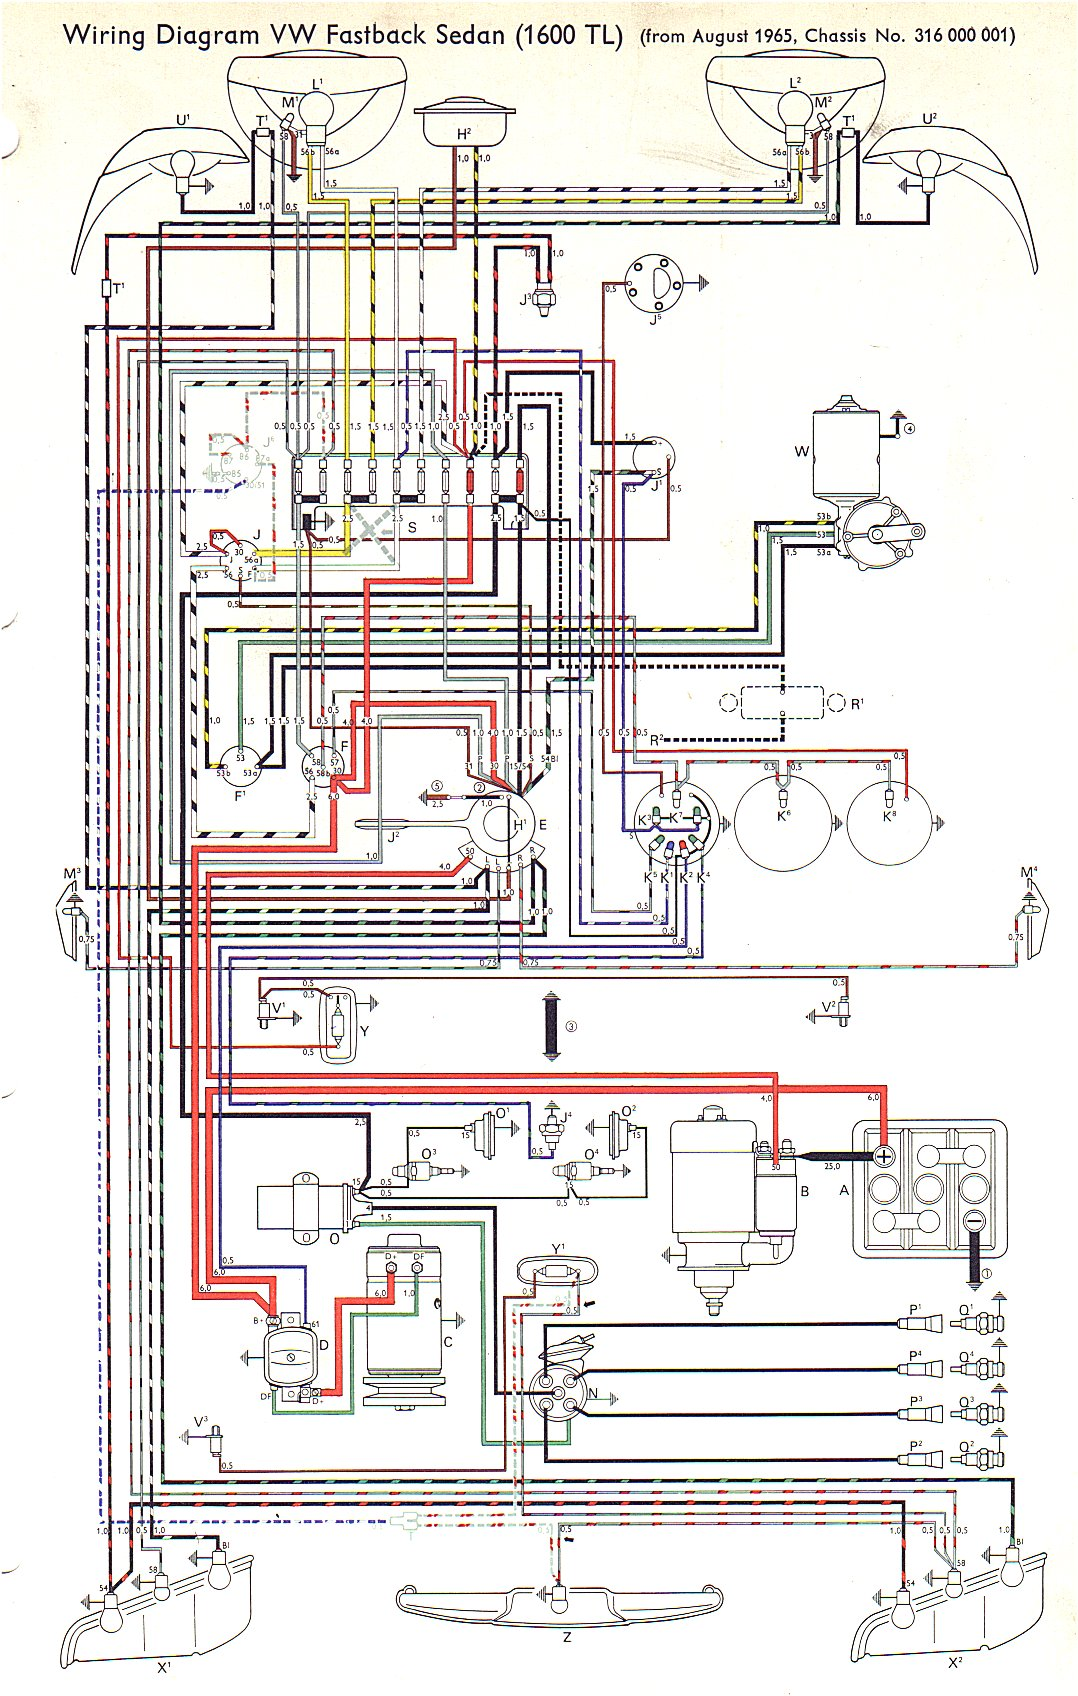 wire66tl vw type 3 wiring diagrams 1968 vw type 3 wiring diagram at gsmx.co